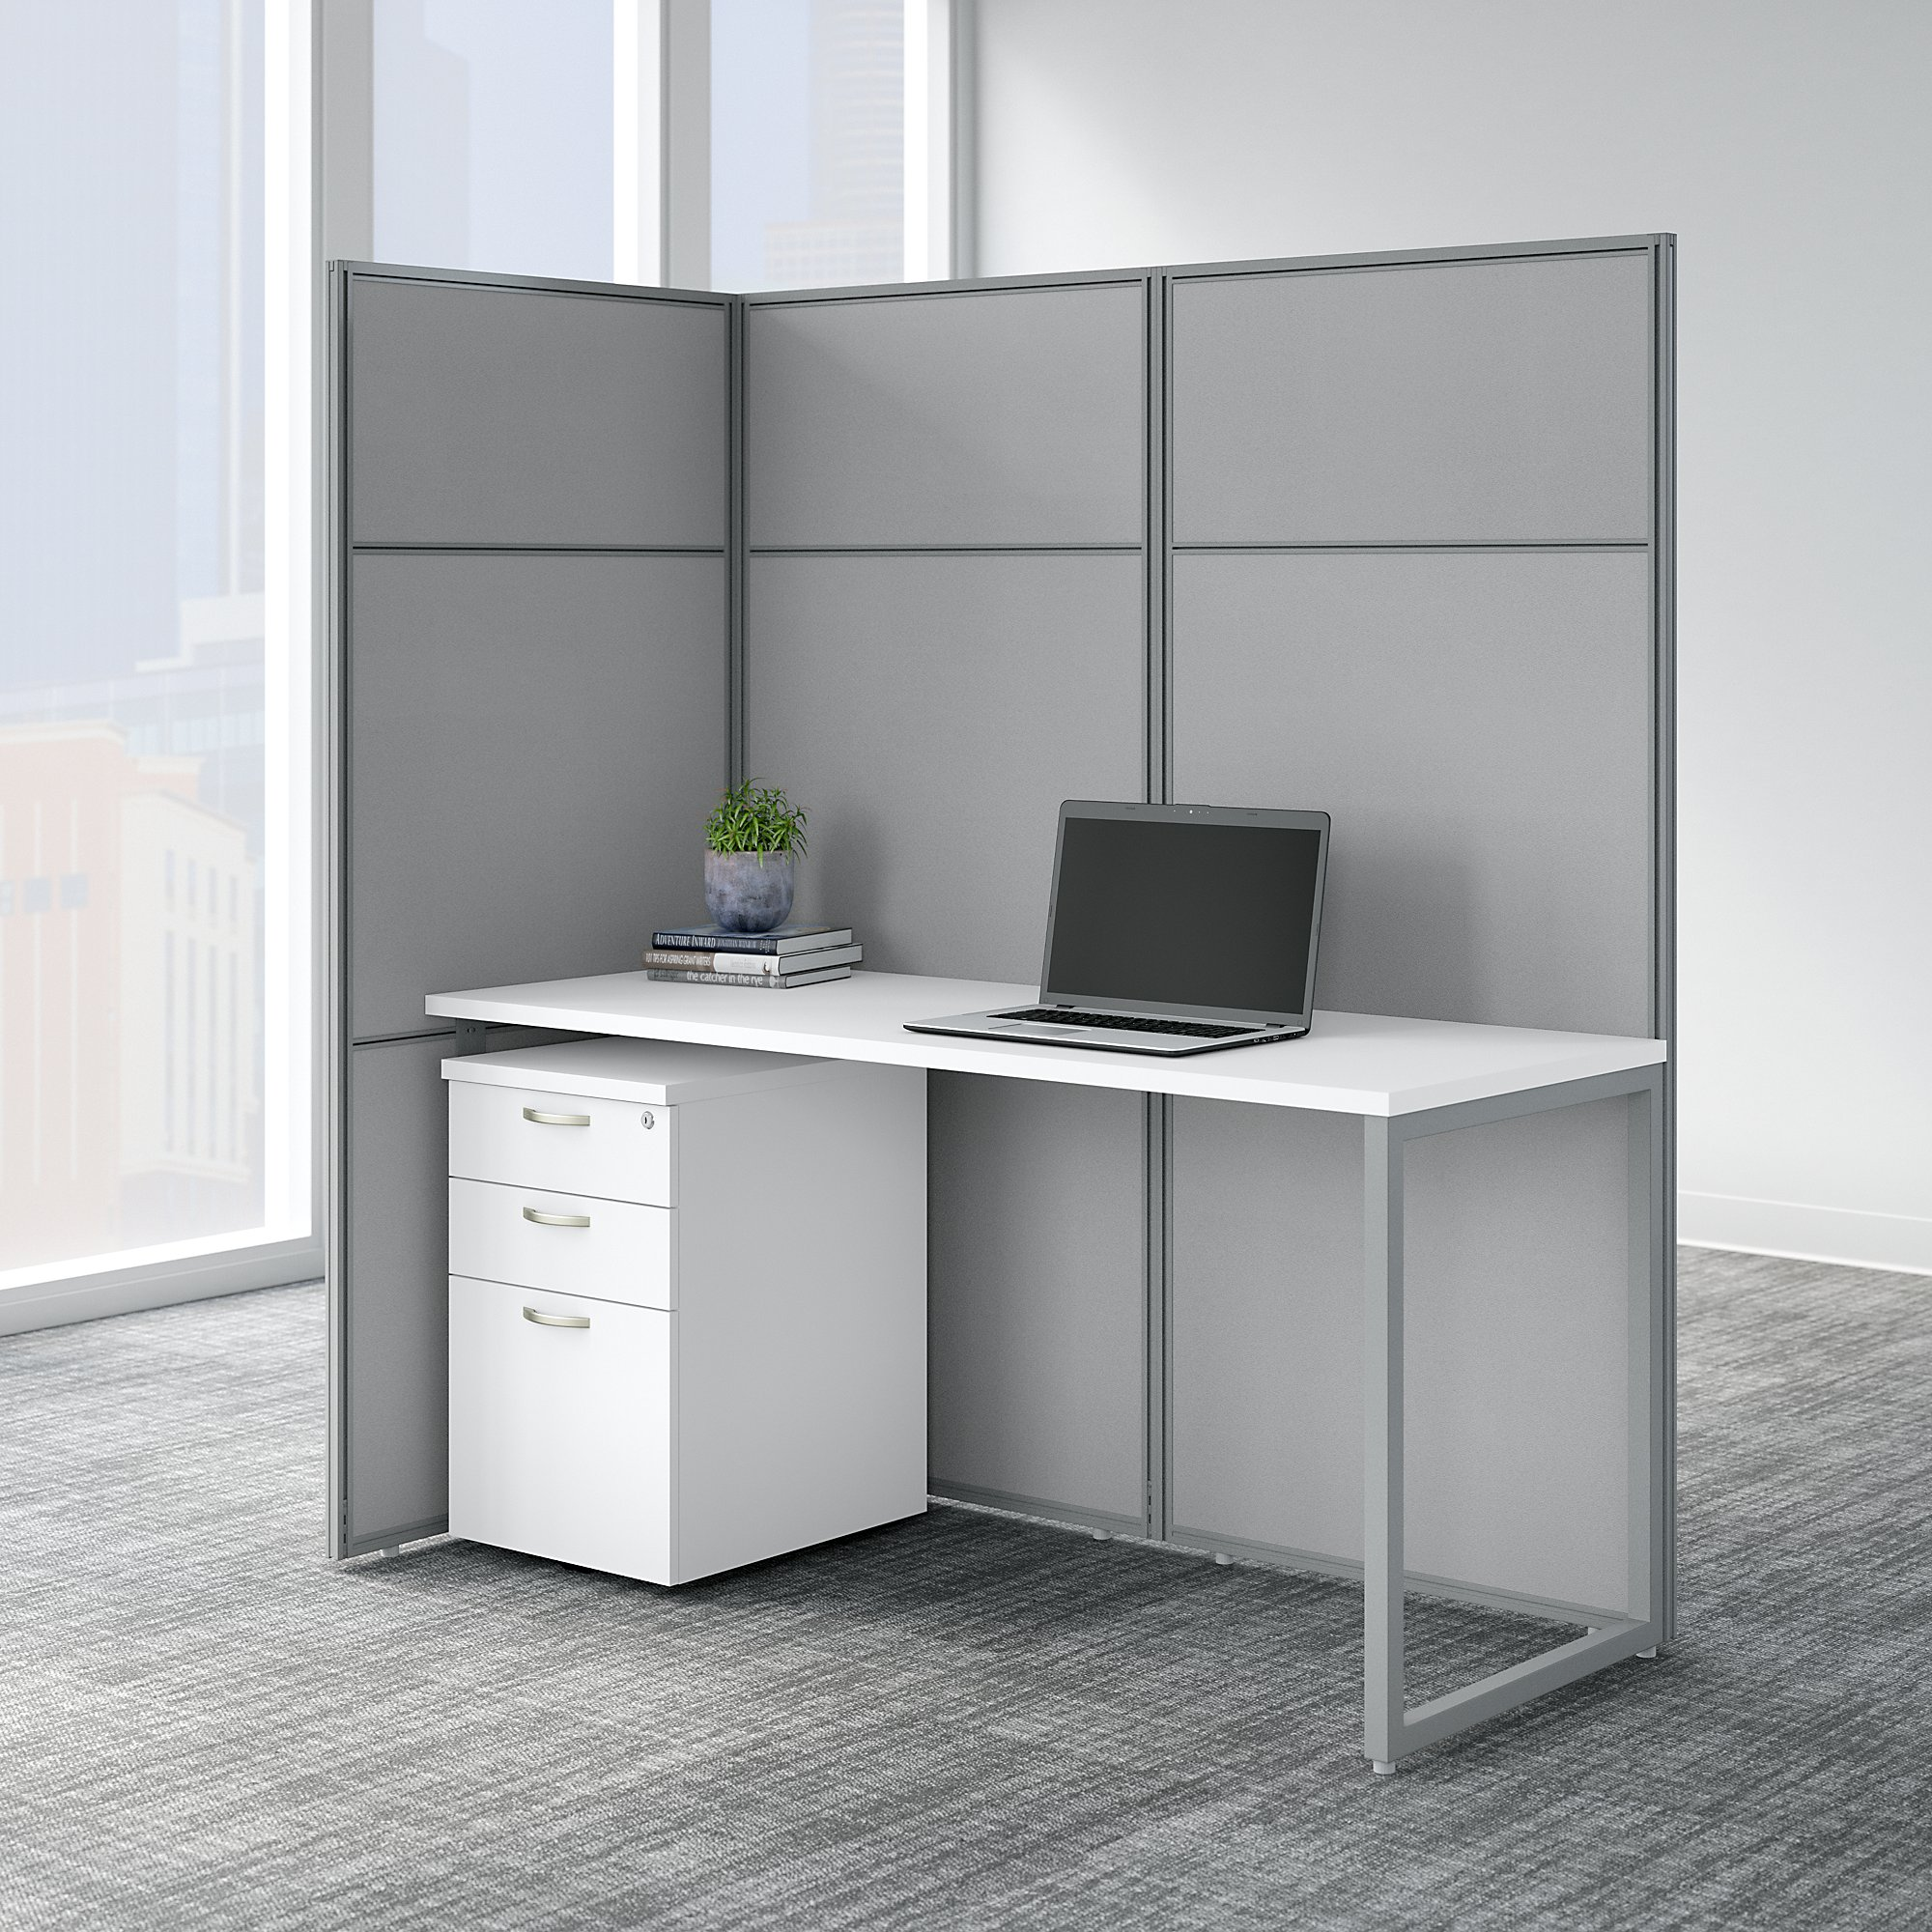 easy office single user cubicle